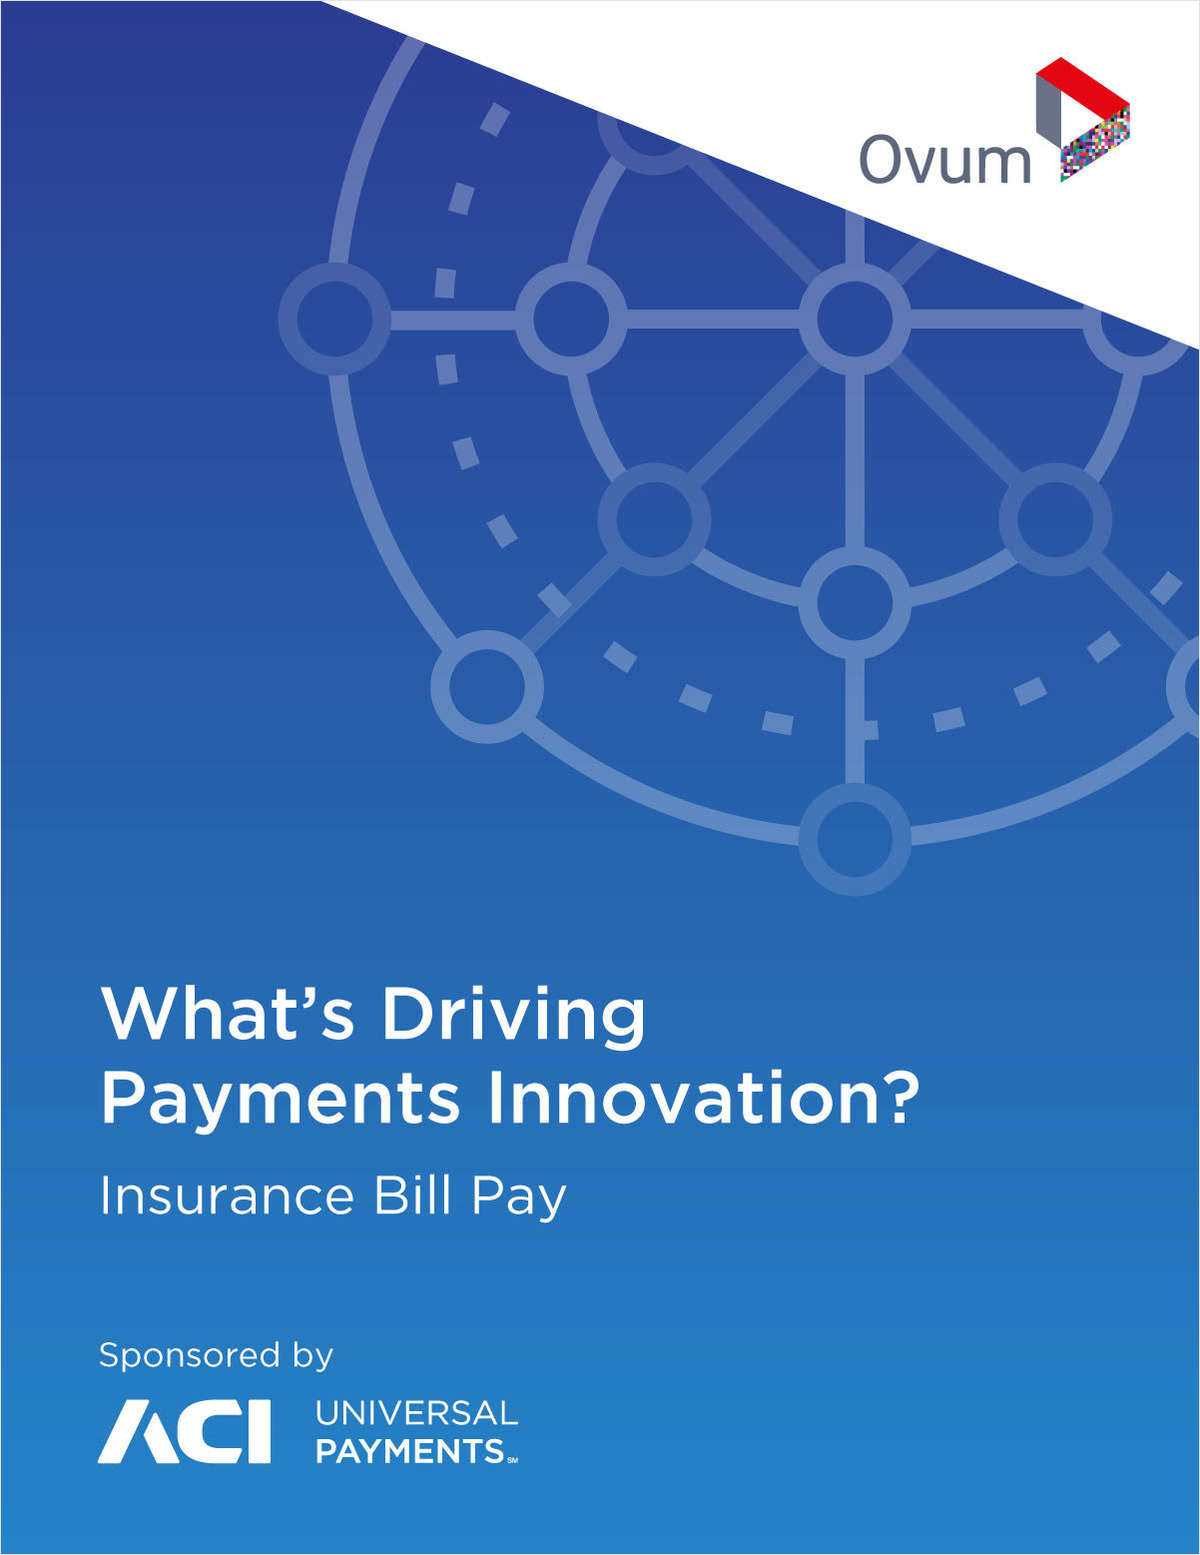 Is Your Insurance Organization a Payments Trailblazer?